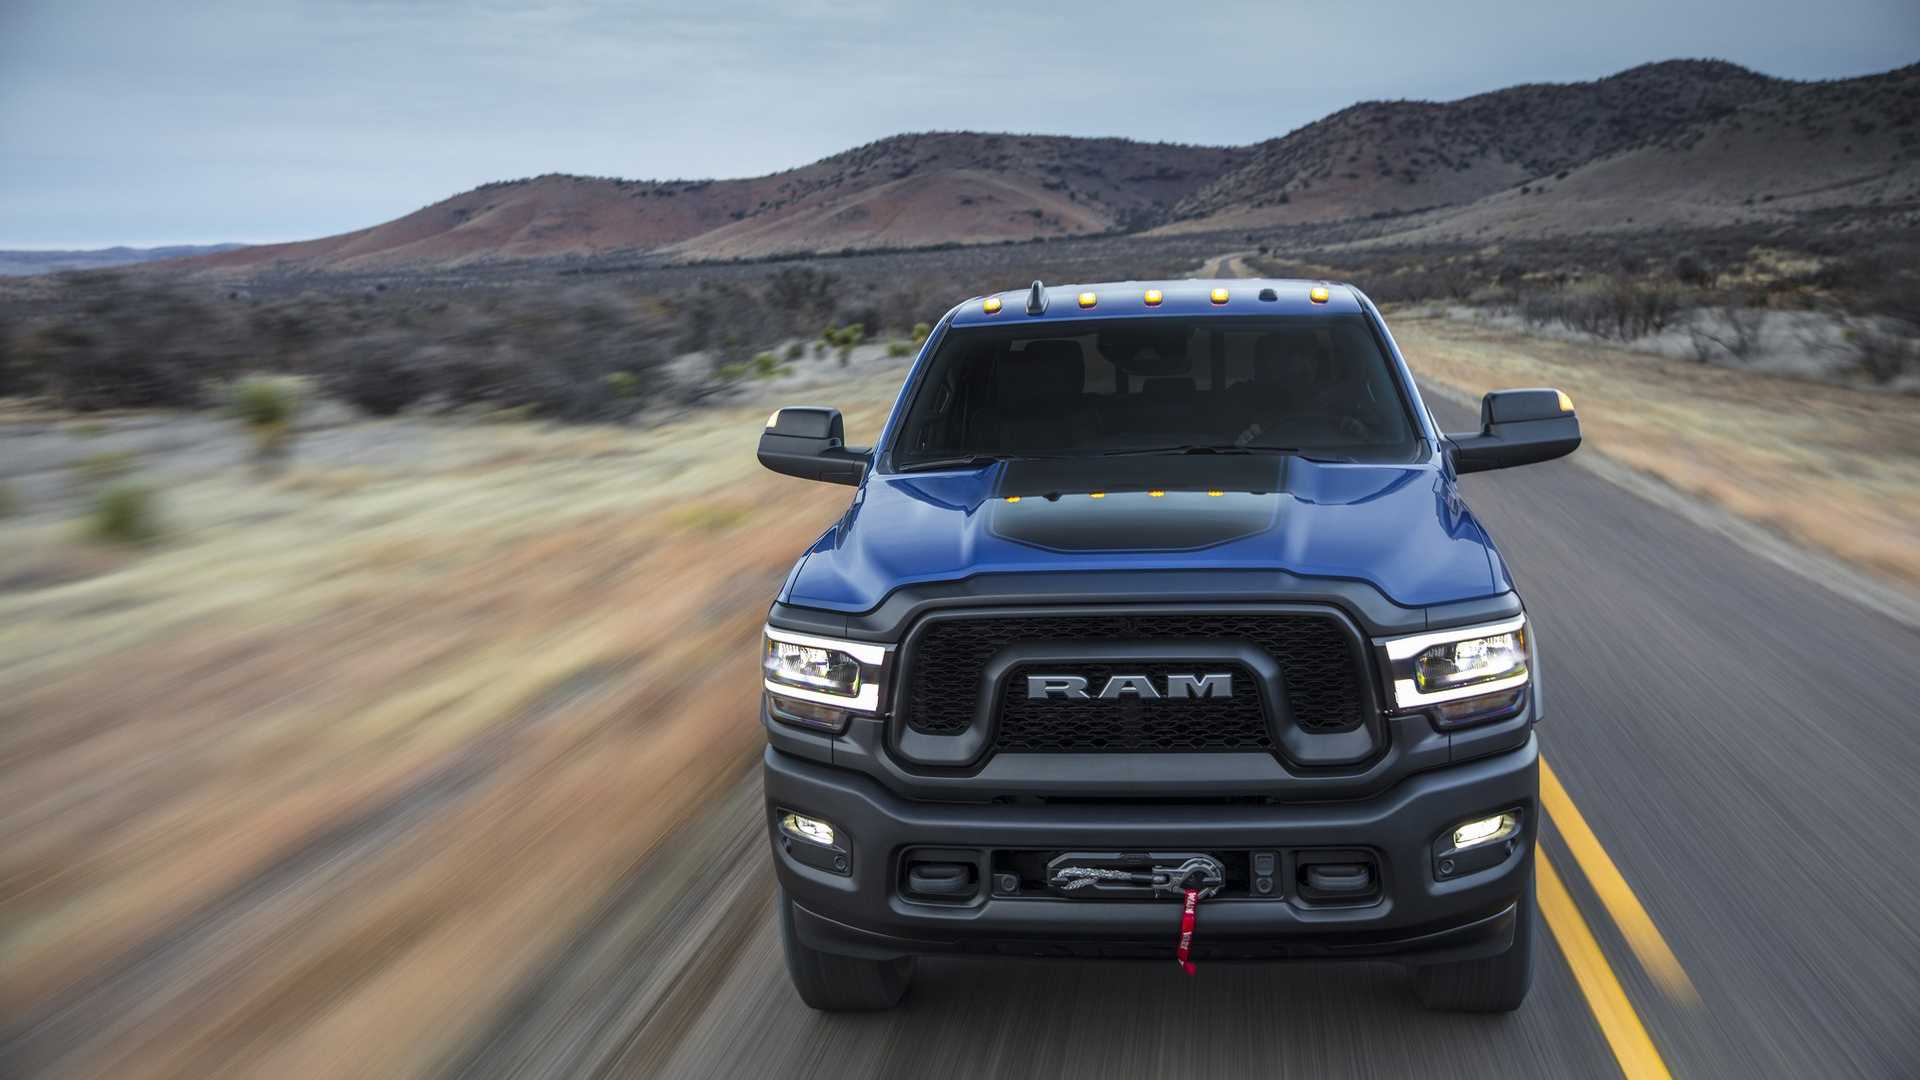 2019 Ram Hd Is The Most Powerful Most Capable Pickup In